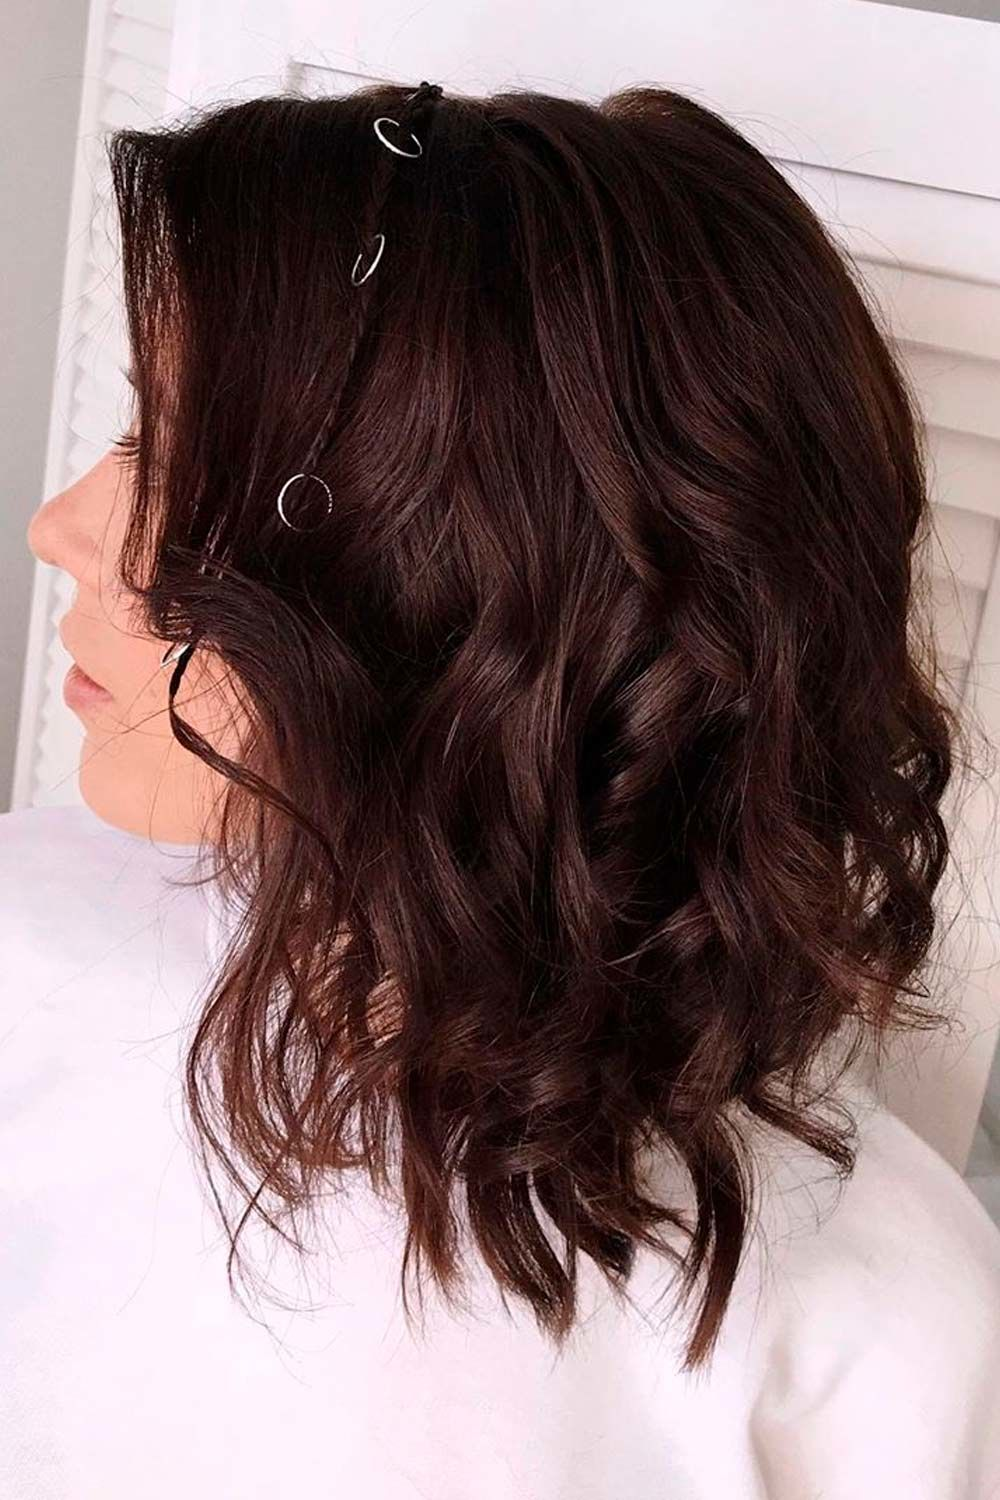 Accessorized Hairstyles For Christmas Party